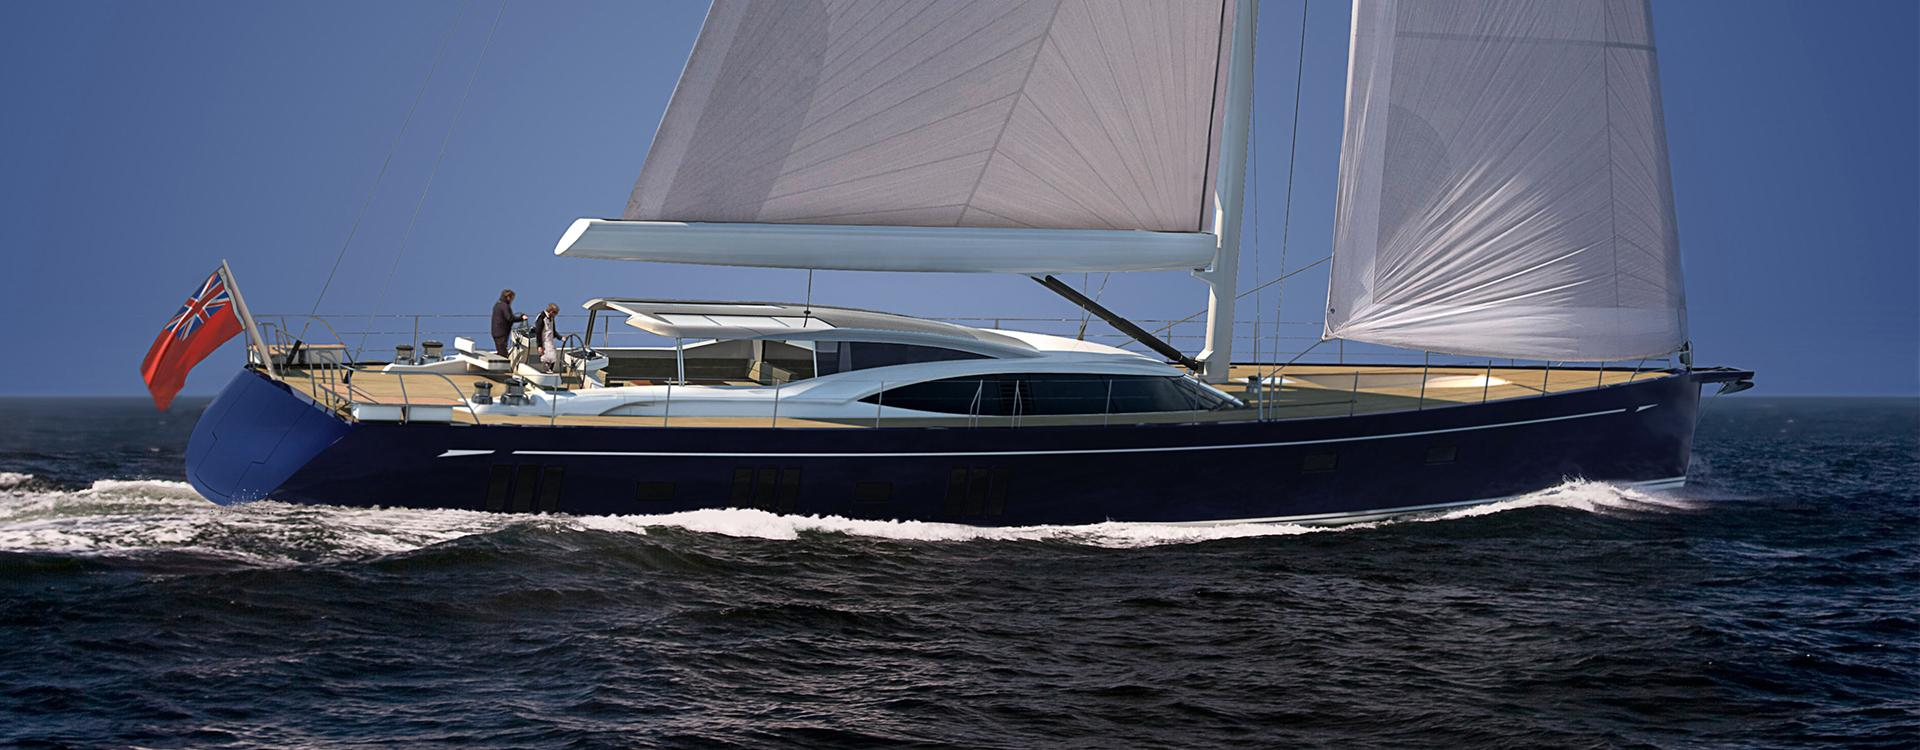 Oyster 1225 120 Foot Sailing Yacht